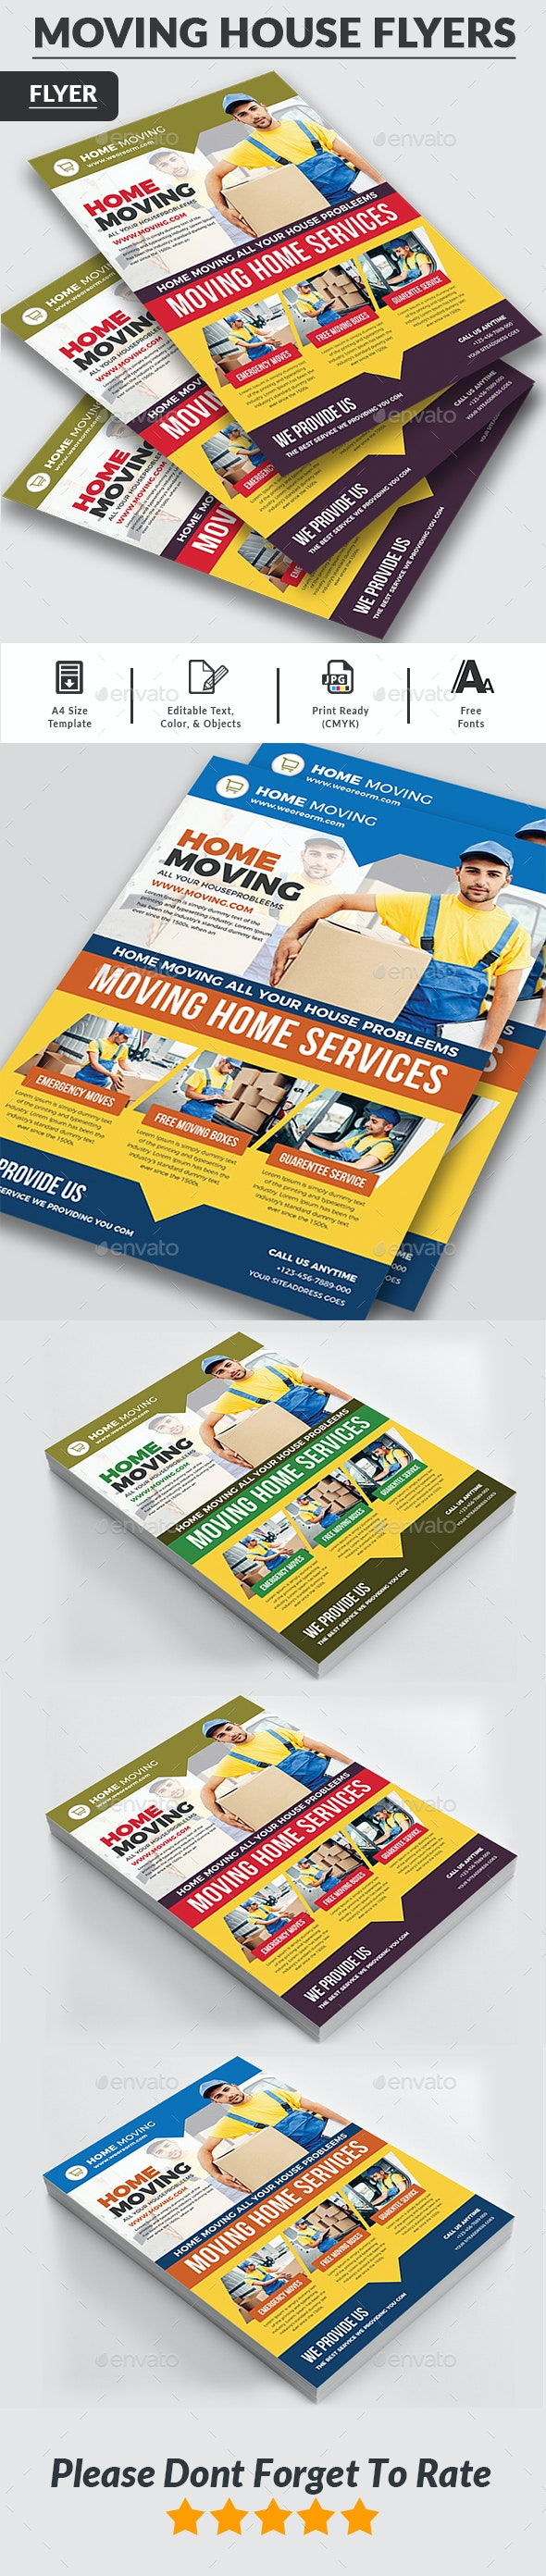 Moving House Flyer - Commerce Flyers